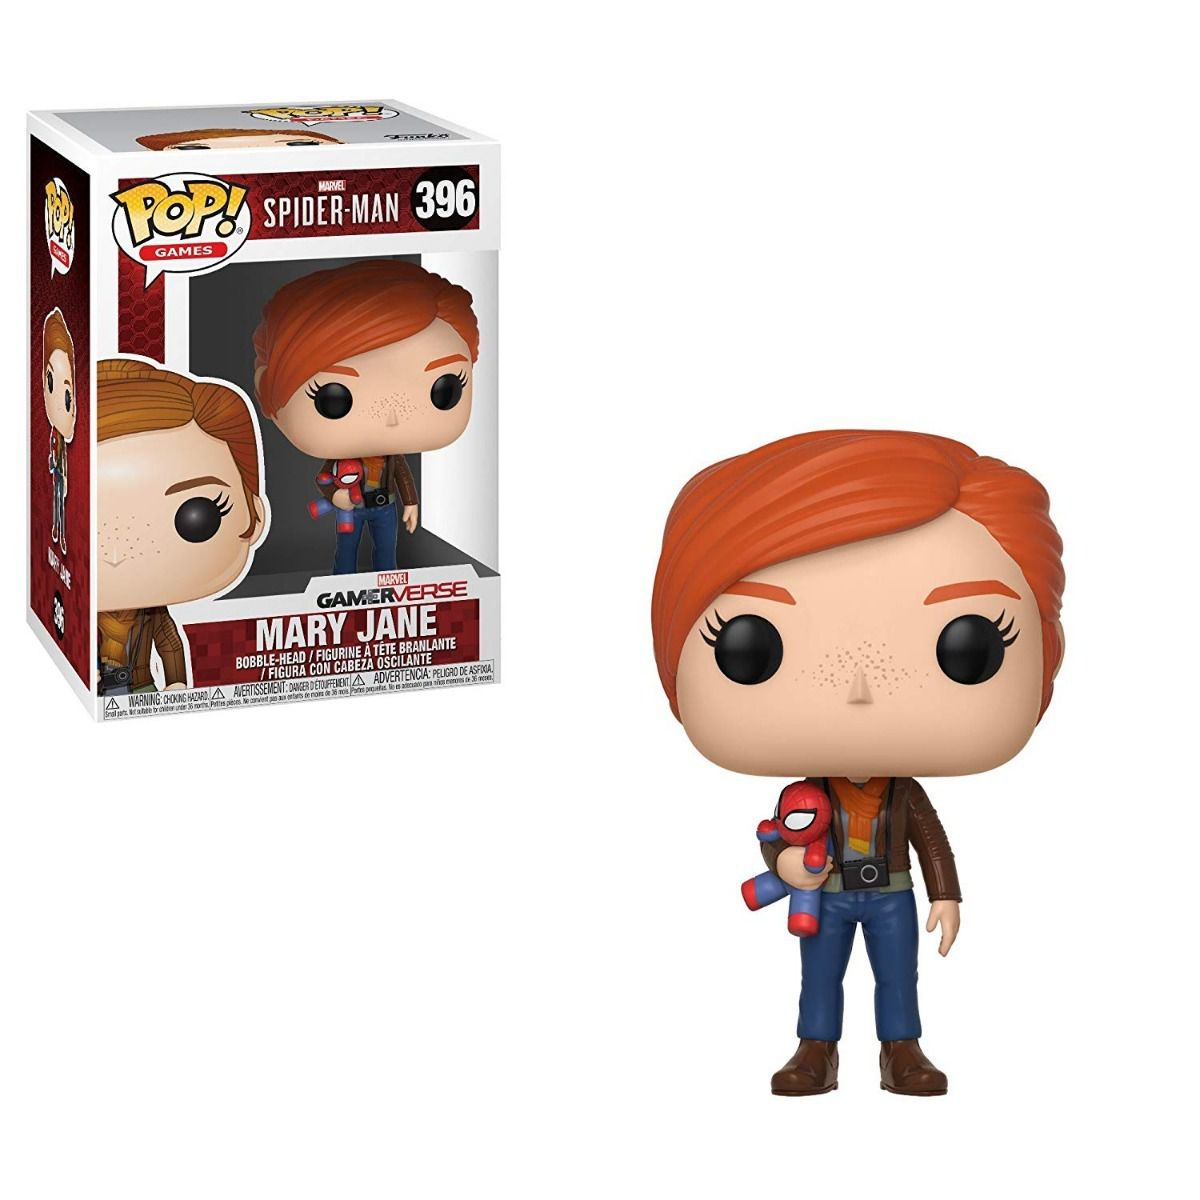 POP FUNKO 396 MARY JANE GAMER VERSE SPIDER MAN